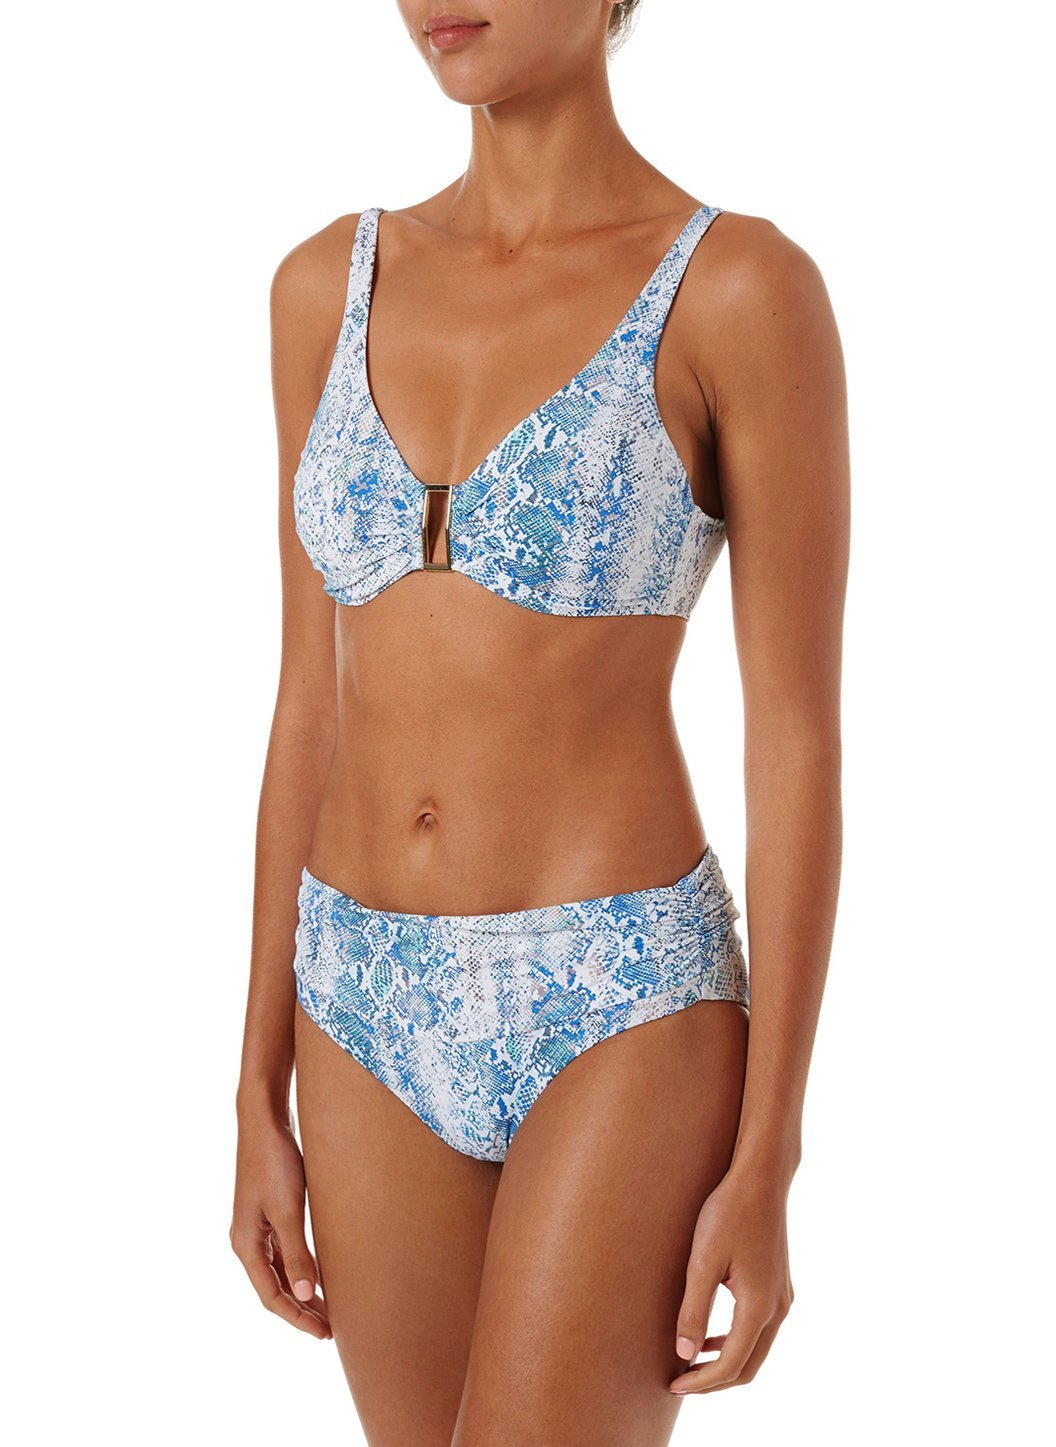 belair serpente overtheshoulder supportive bikini 2019 F